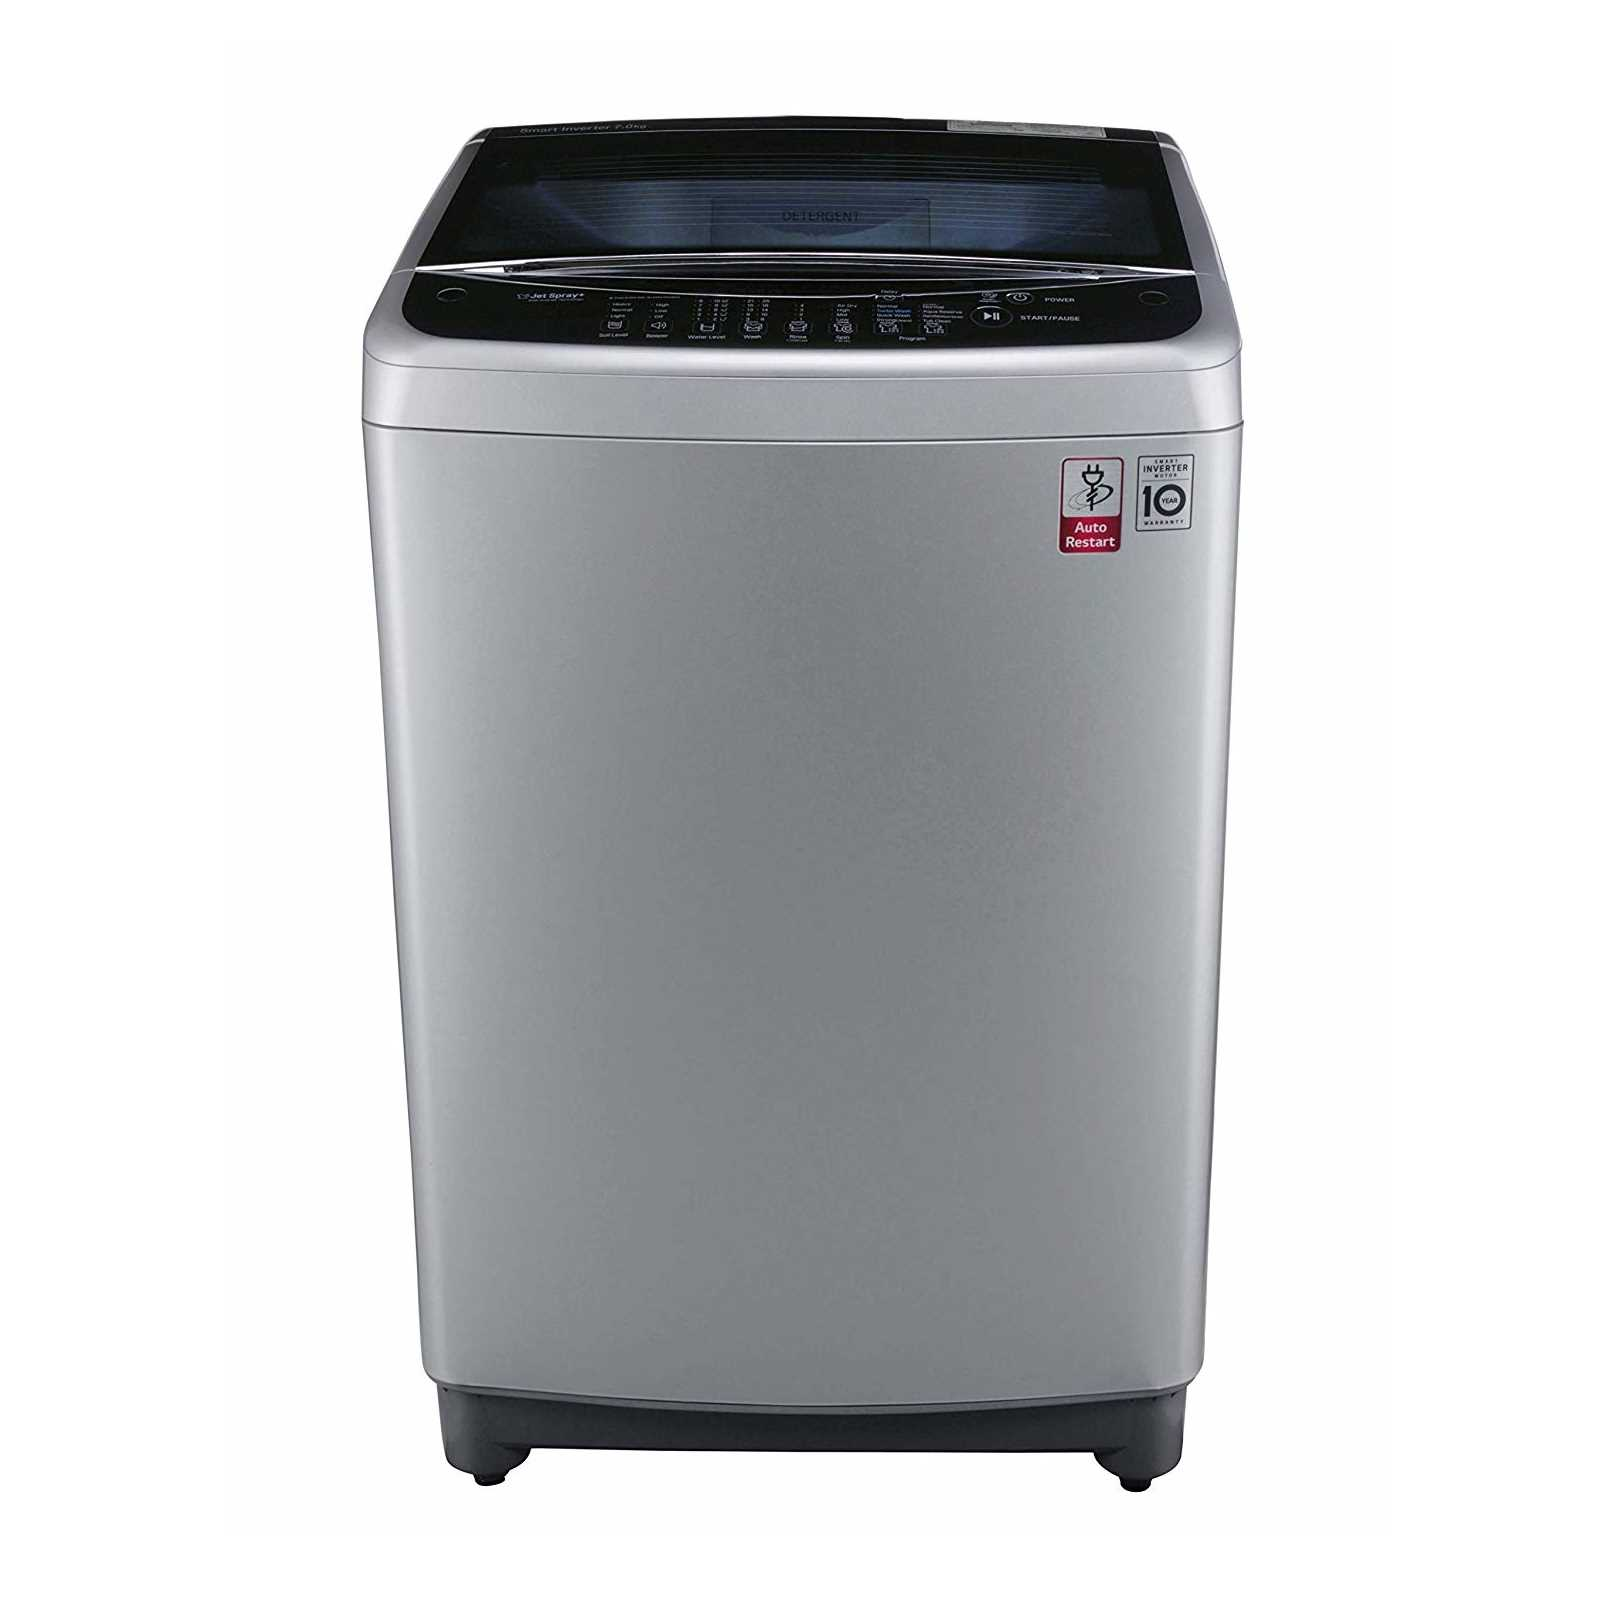 LG T8077NEDL1 7 Kg Fully Automatic Top Loading Washing Machine